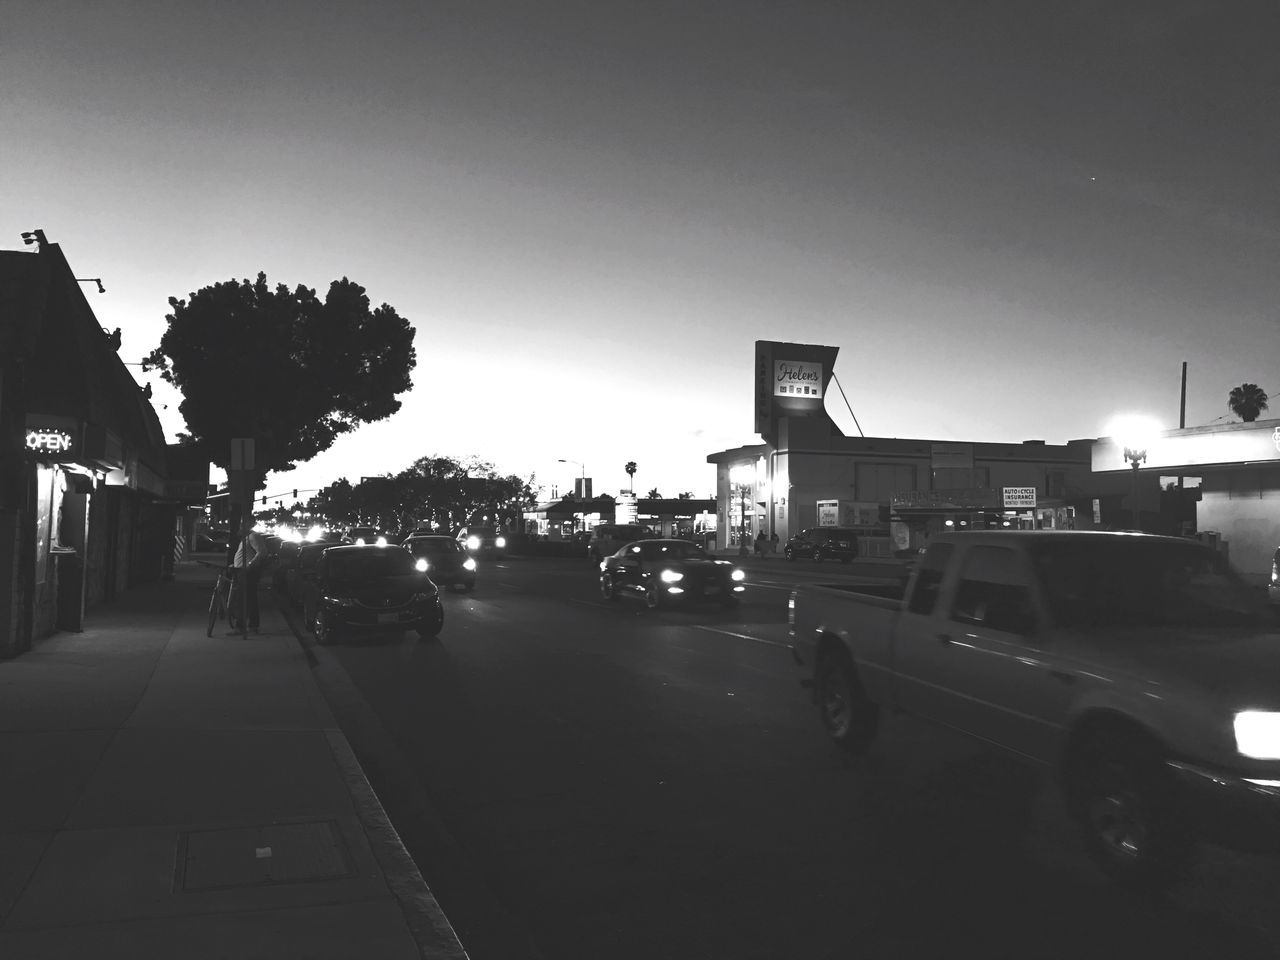 Car Transportation Building Exterior Built Structure Land Vehicle City Road Street Architecture Mode Of Transport Clear Sky Outdoors Tree Sky No People Day Blackandwhite Inner City City Heights El Cajon Blvd Sunset Rush Hour